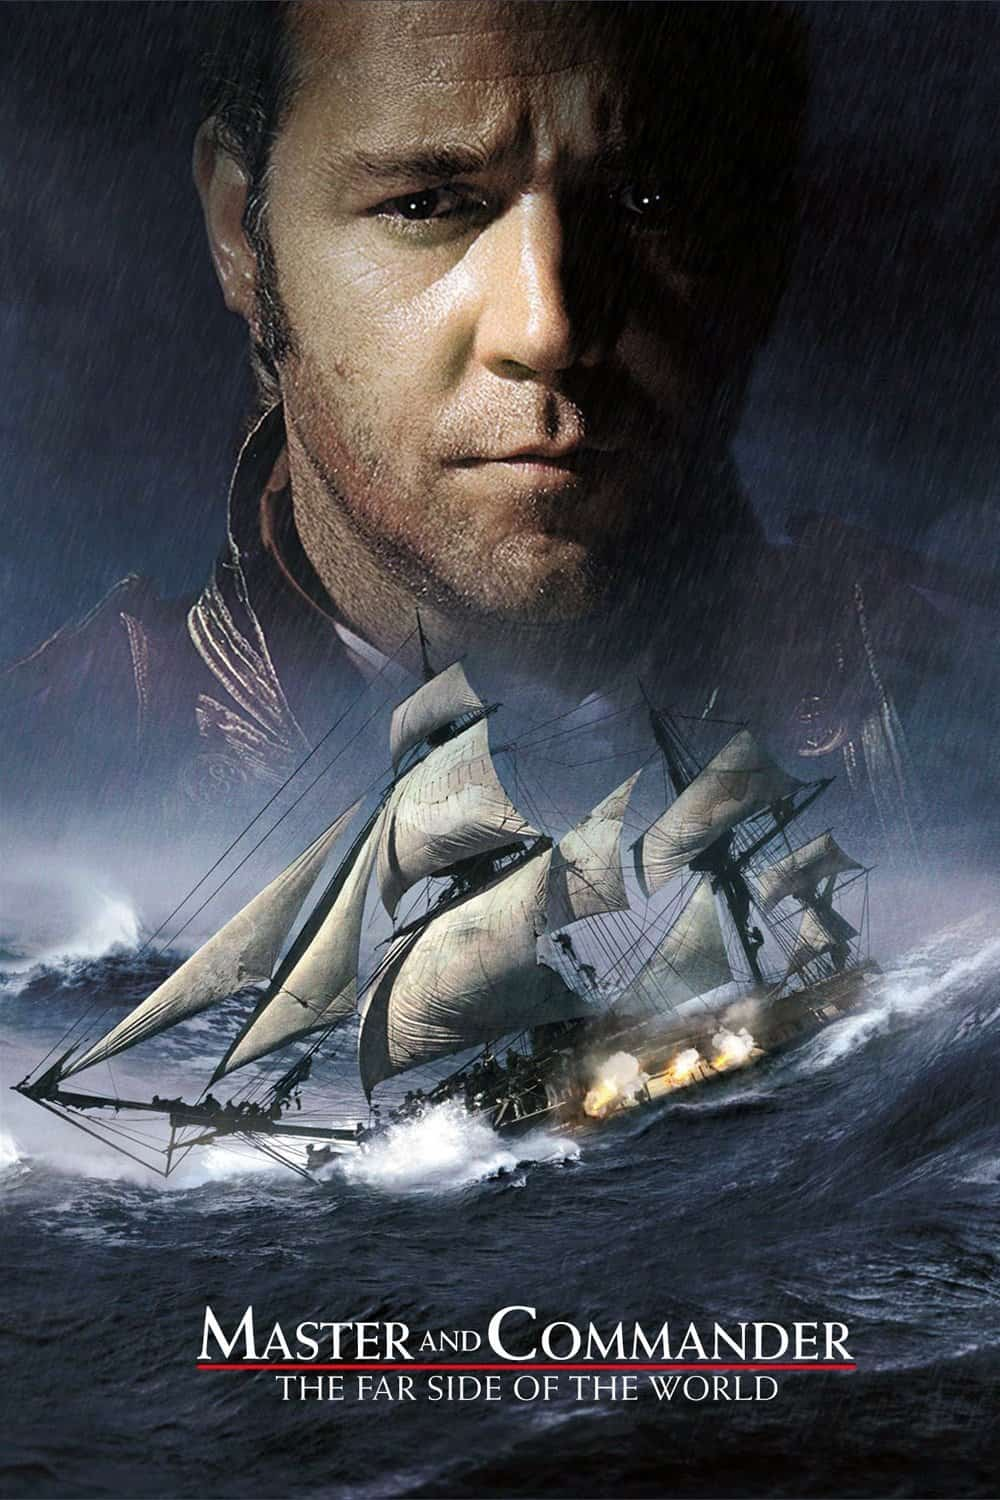 Master and Commander: The Far Side of the World, 2003